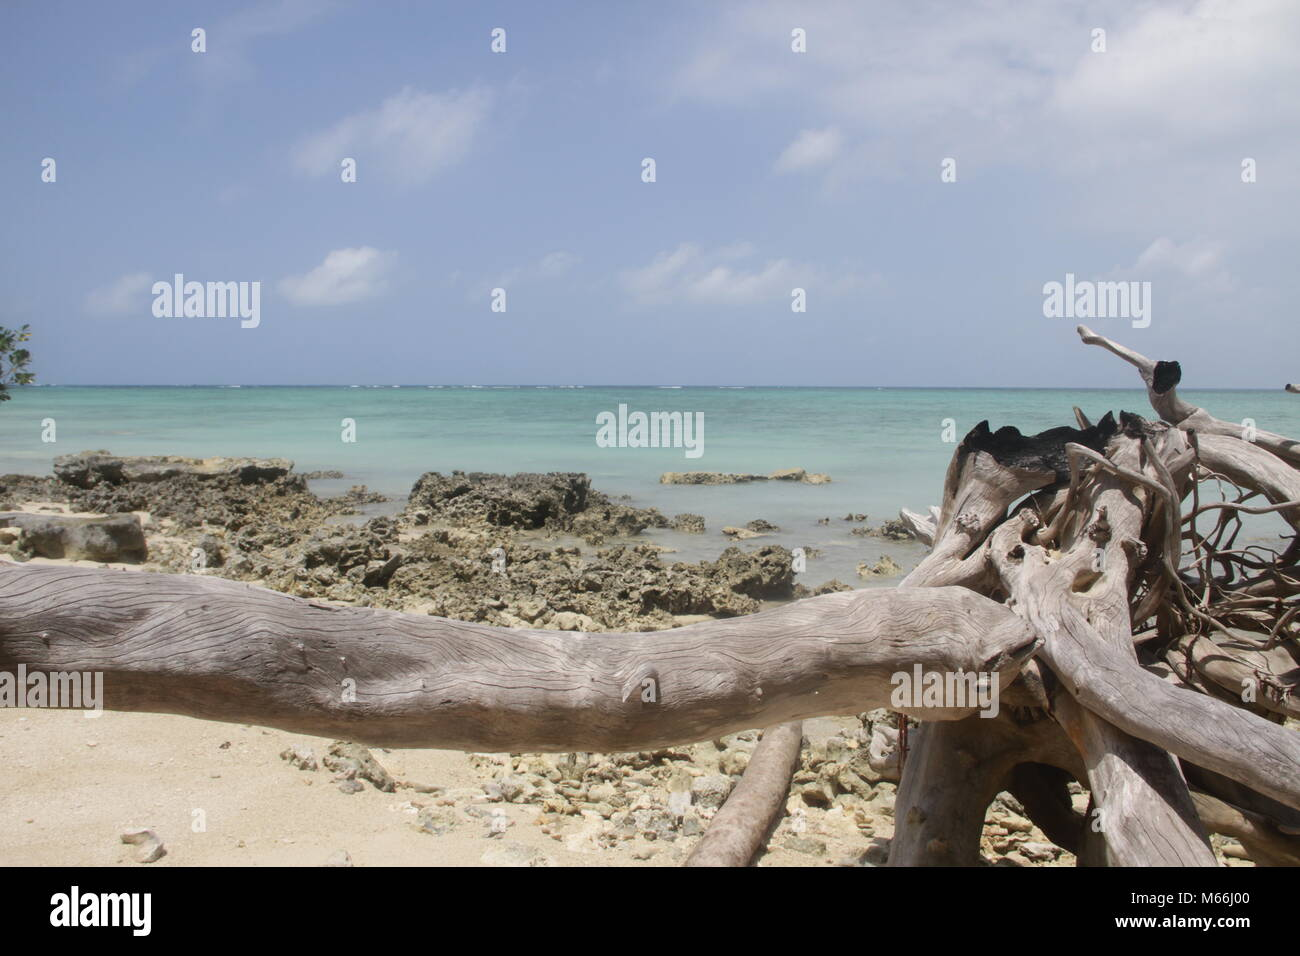 Belitung 2018, done fulfilled my dream to sit in that branch. Amazing. - Stock Image